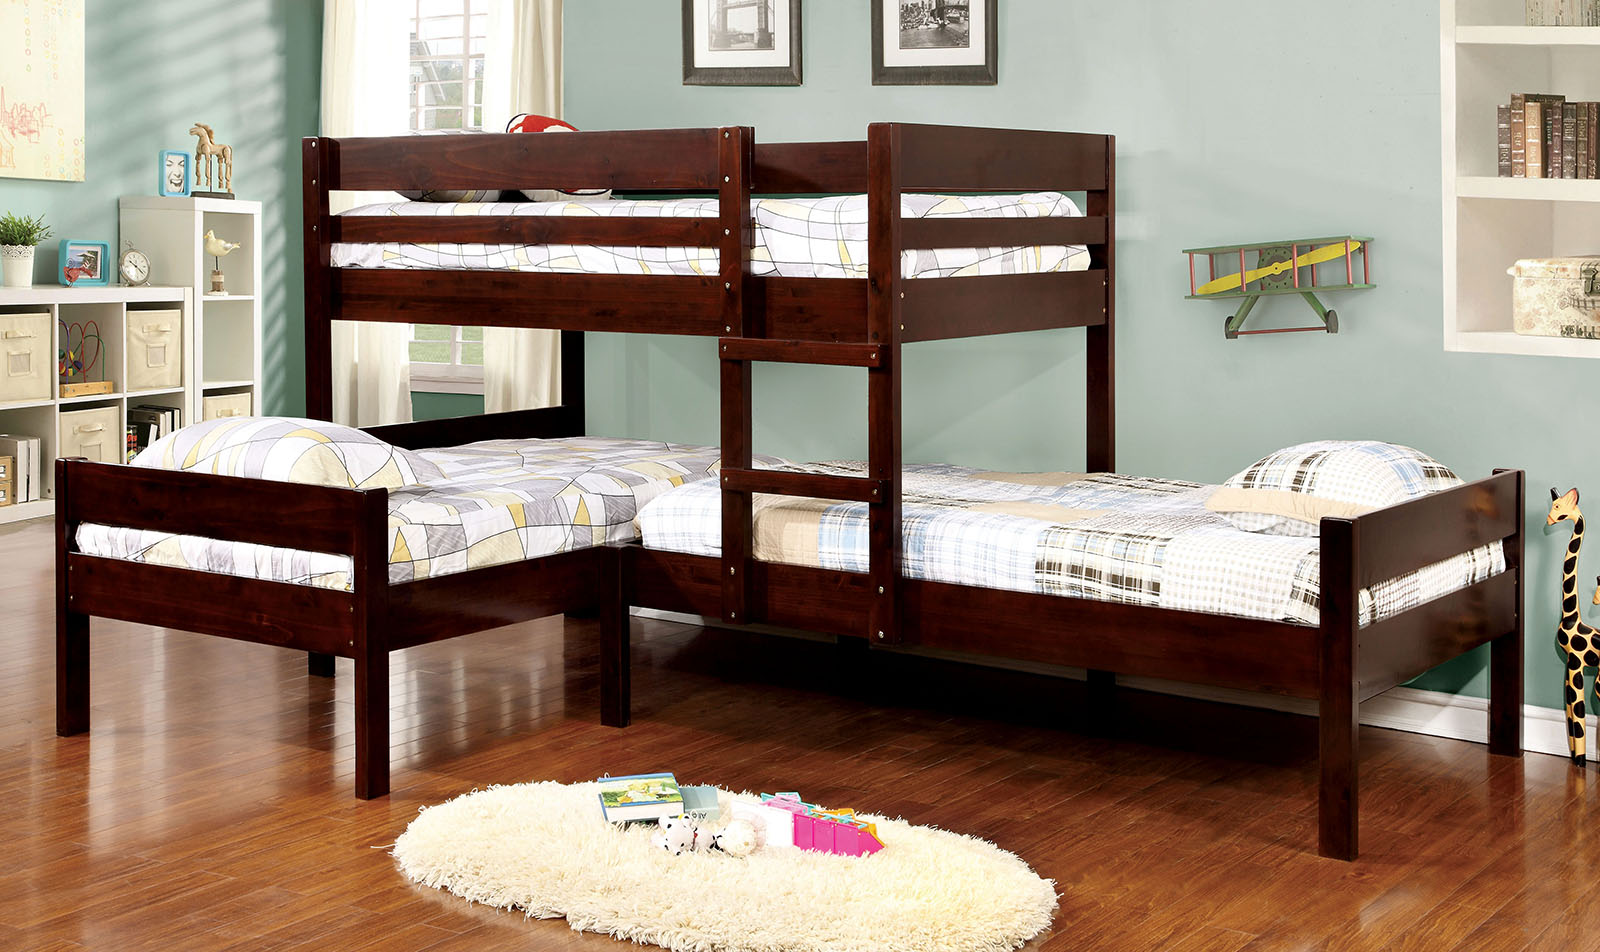 Ranford cm bk626 t t t bunkbed furniture mattress los for Double bed bedroom sets